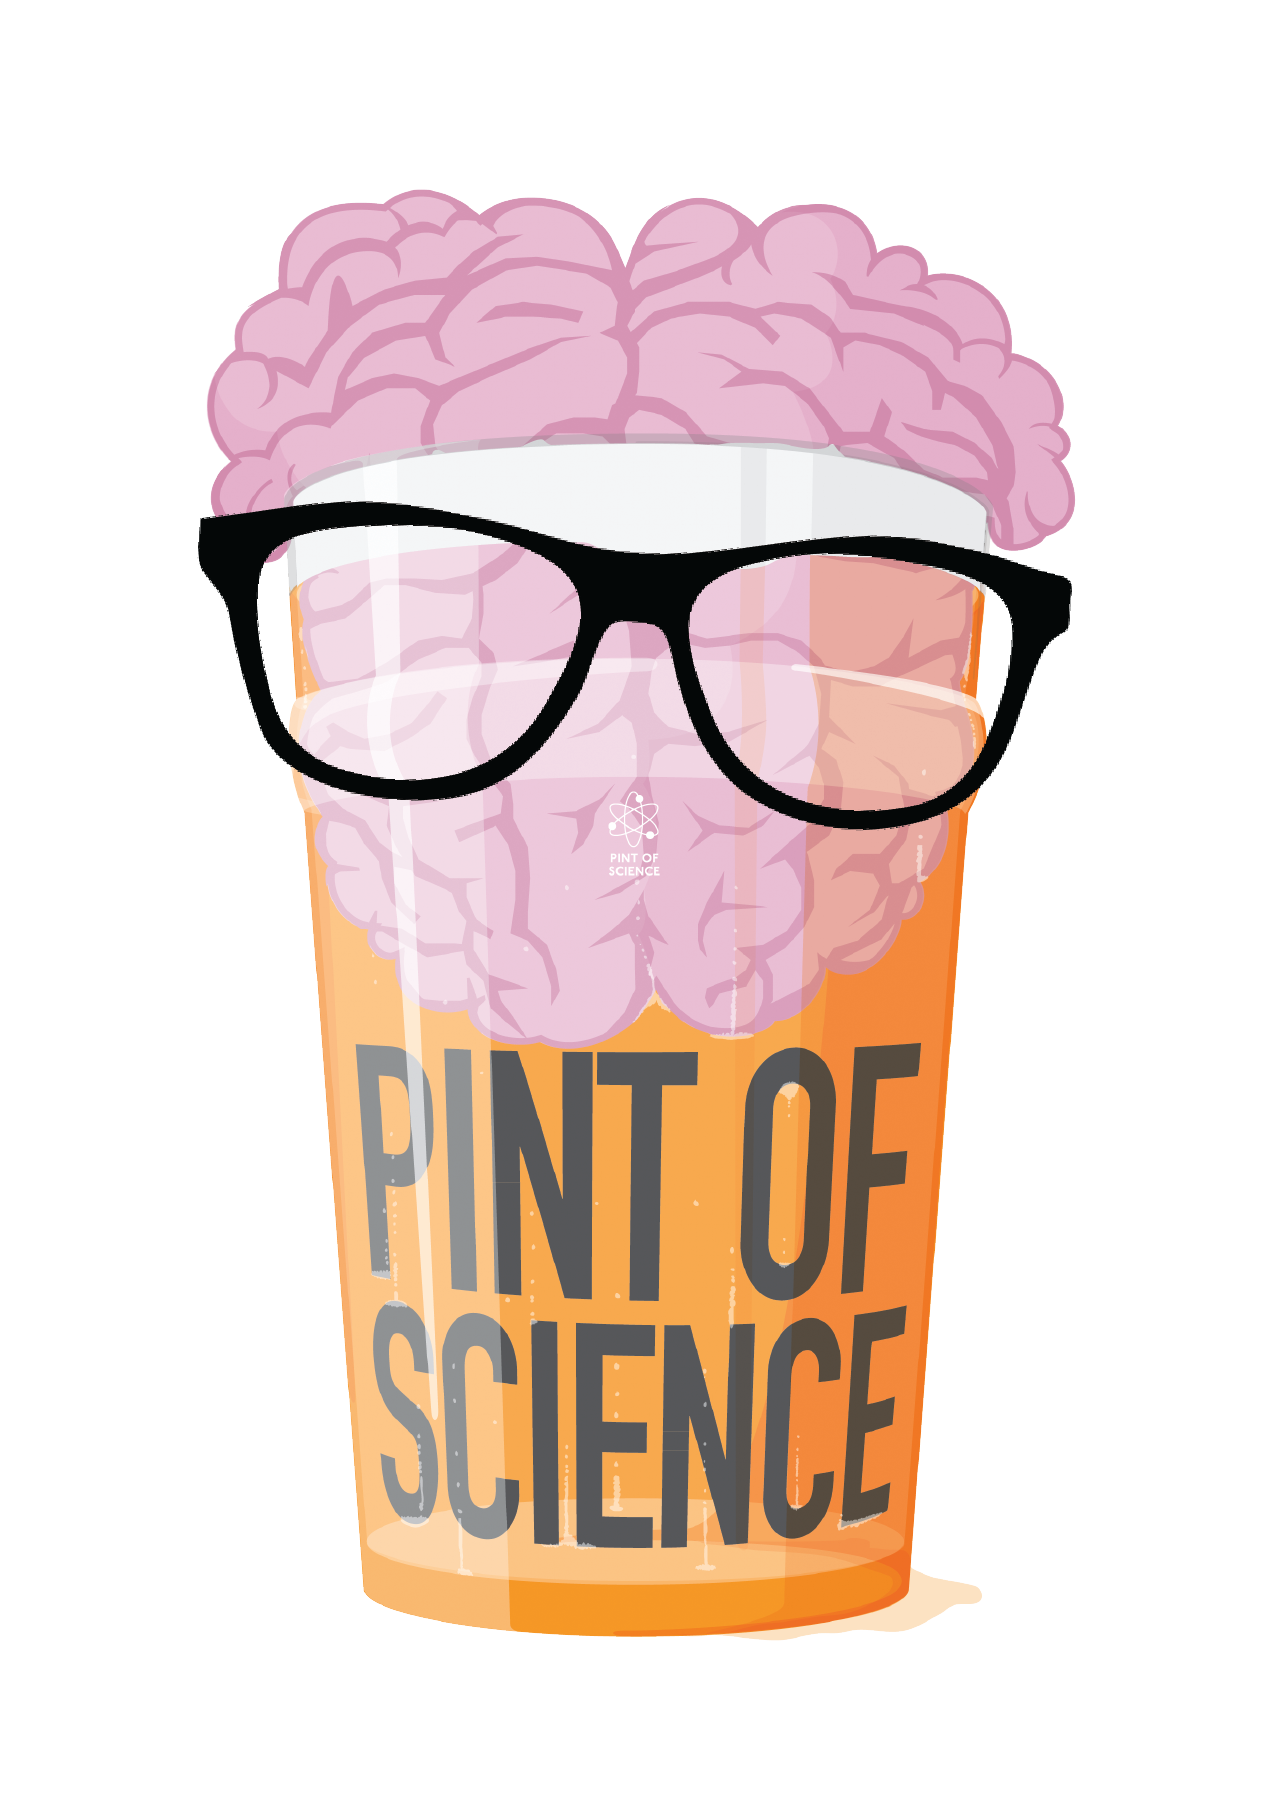 Pint-of-Science-Logo-with-Glasses